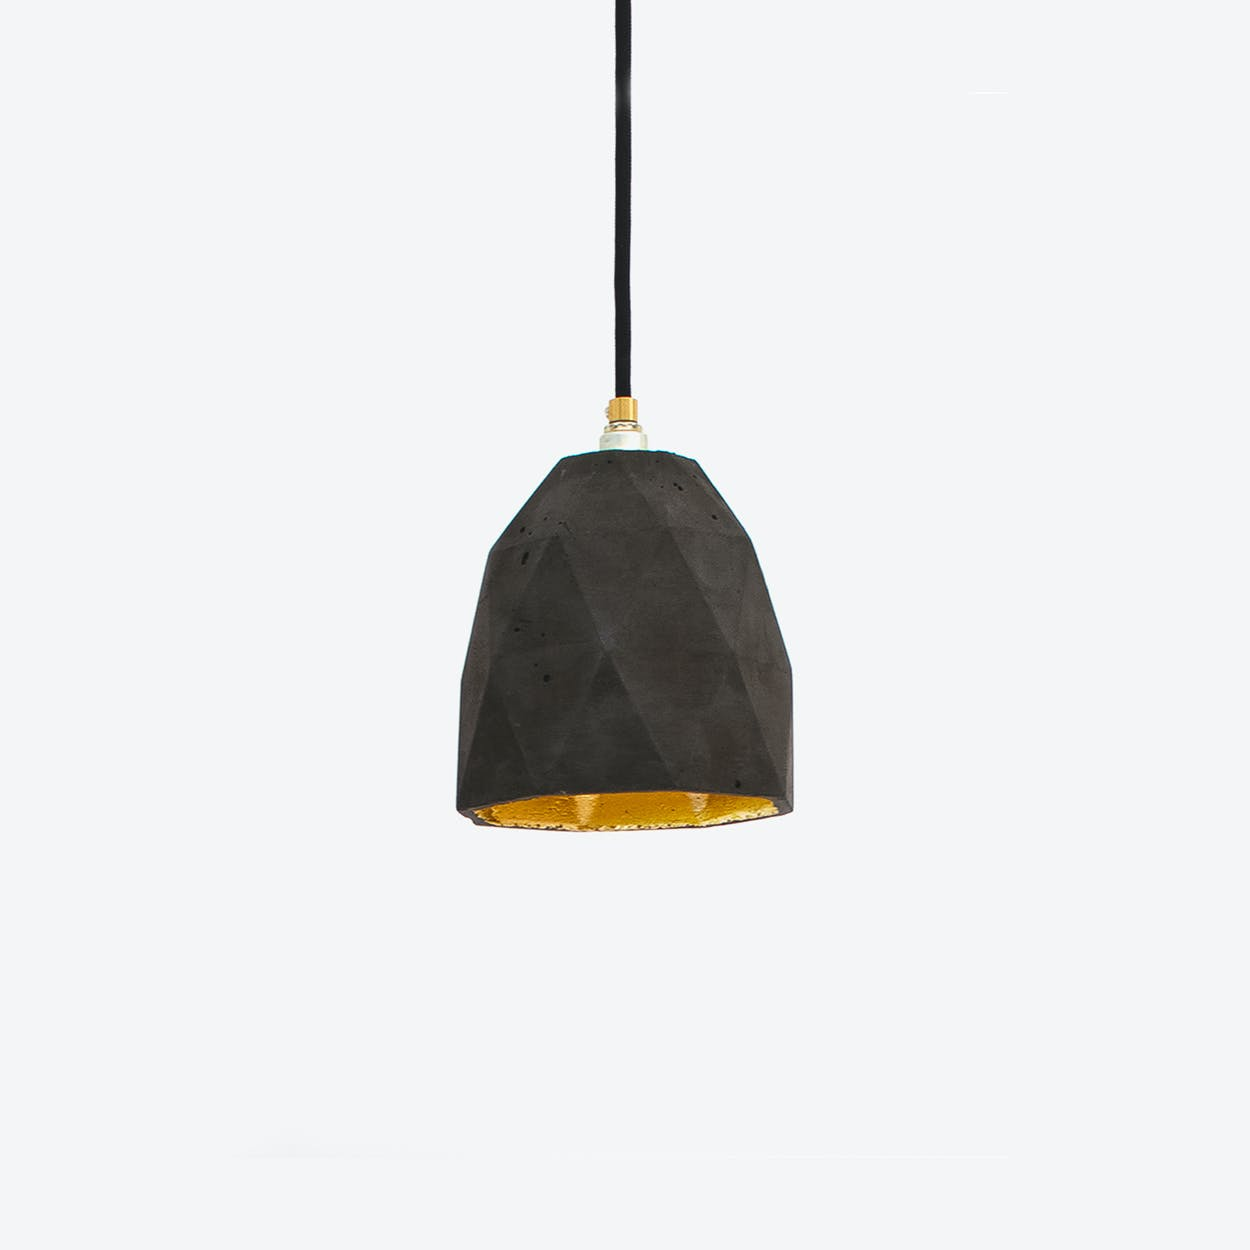 Concrete Pendant Light Triangle T1 in Dark Grey and Gold